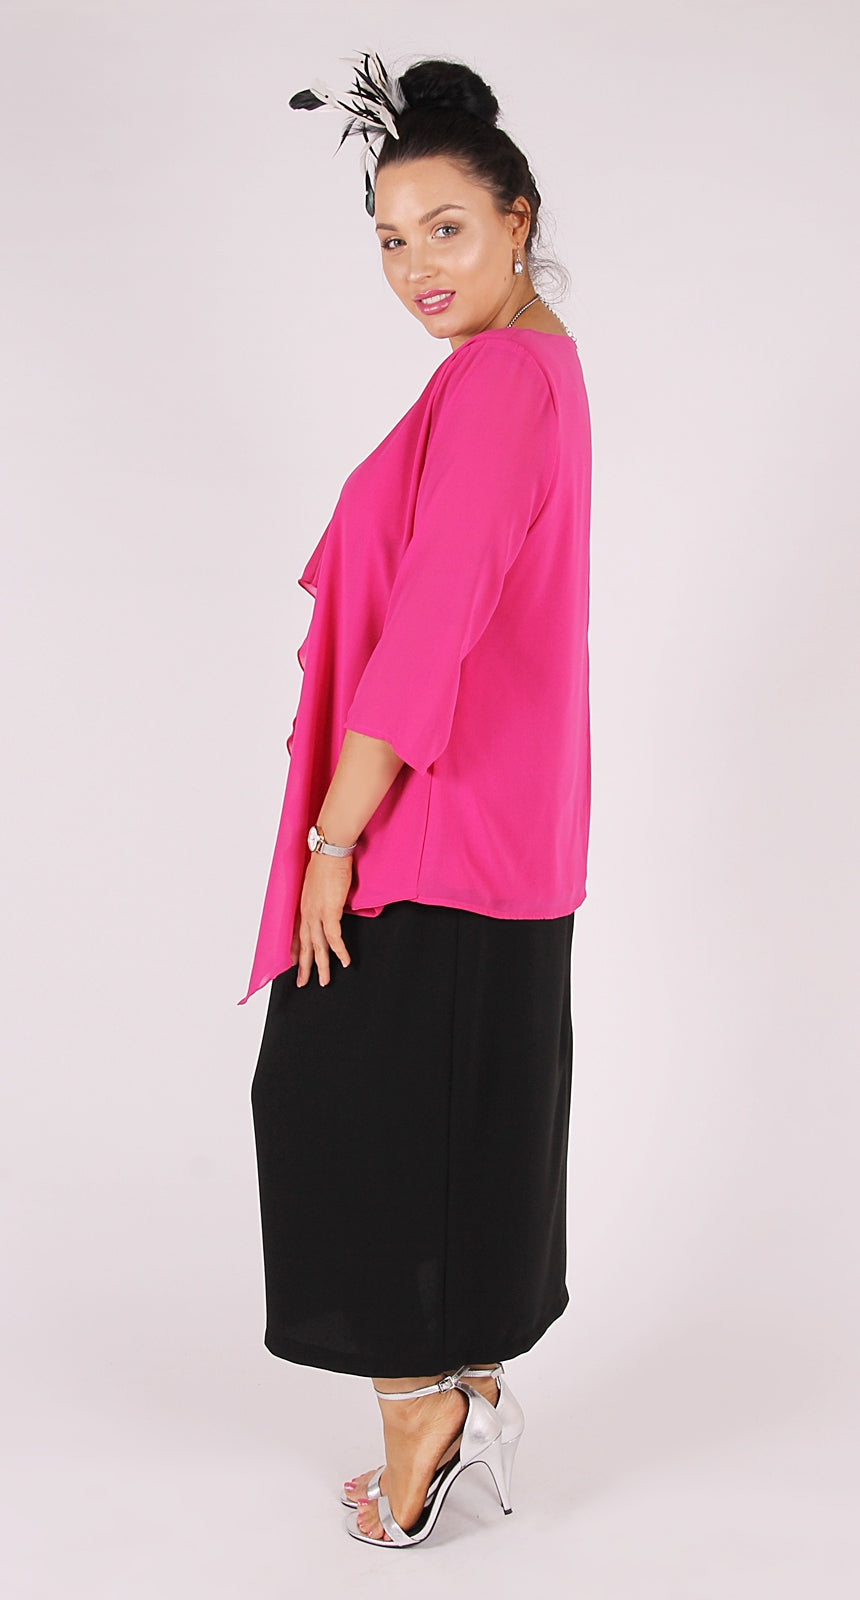 Karl Joseph Waterfall Top Pink